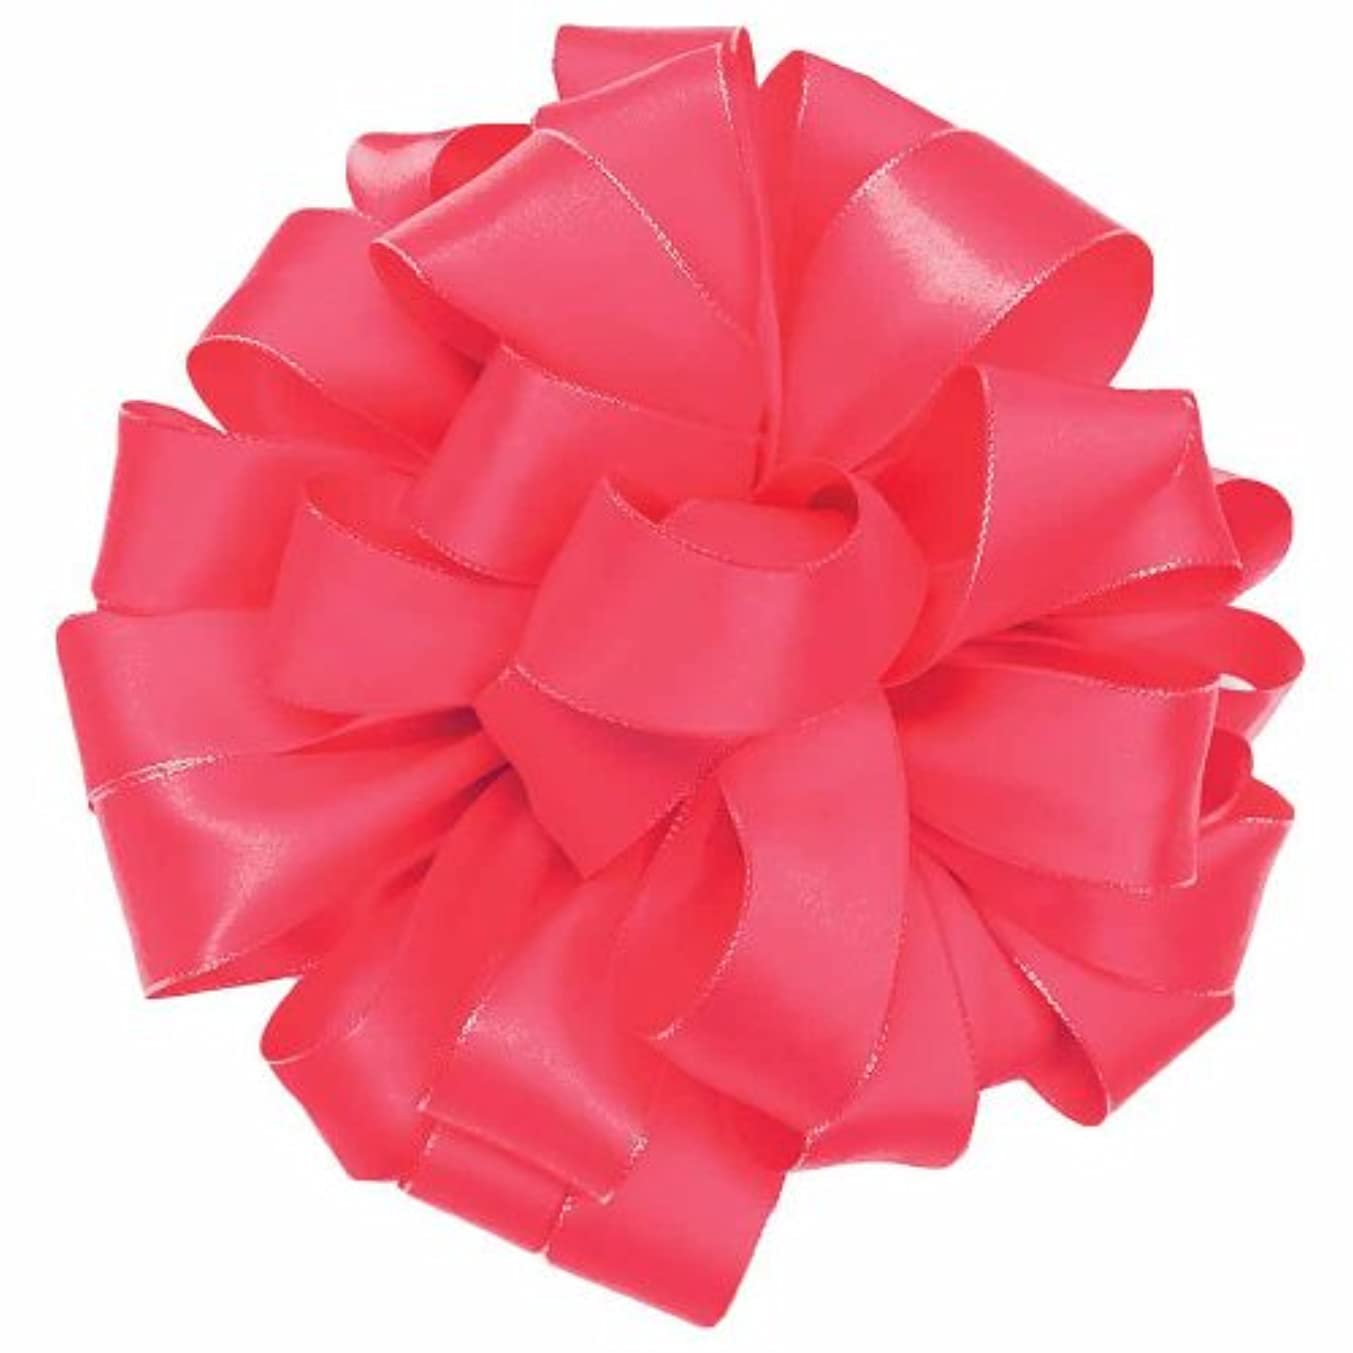 Offray Olivia Craft Ribbon, 1-1/2-Inch by 25-Yard, Neon Pink